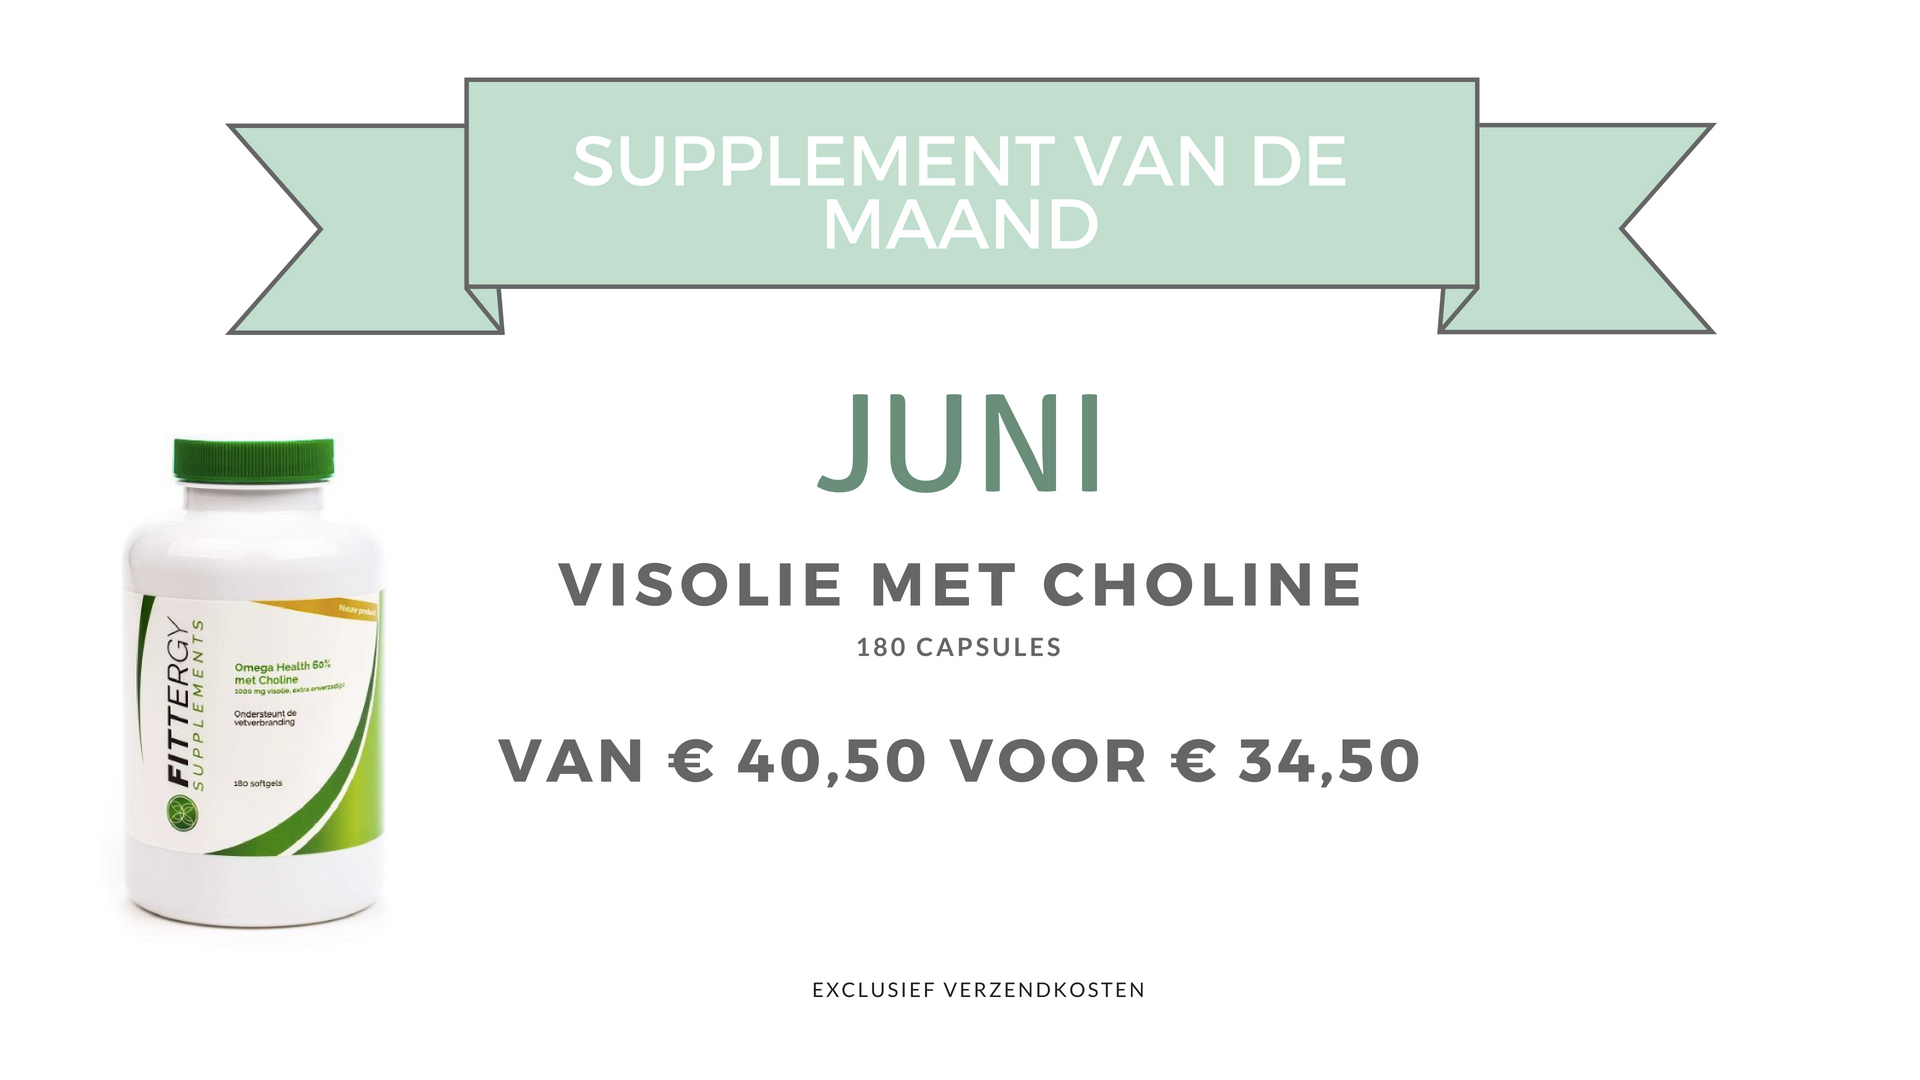 supplement van de maand-2.jpg